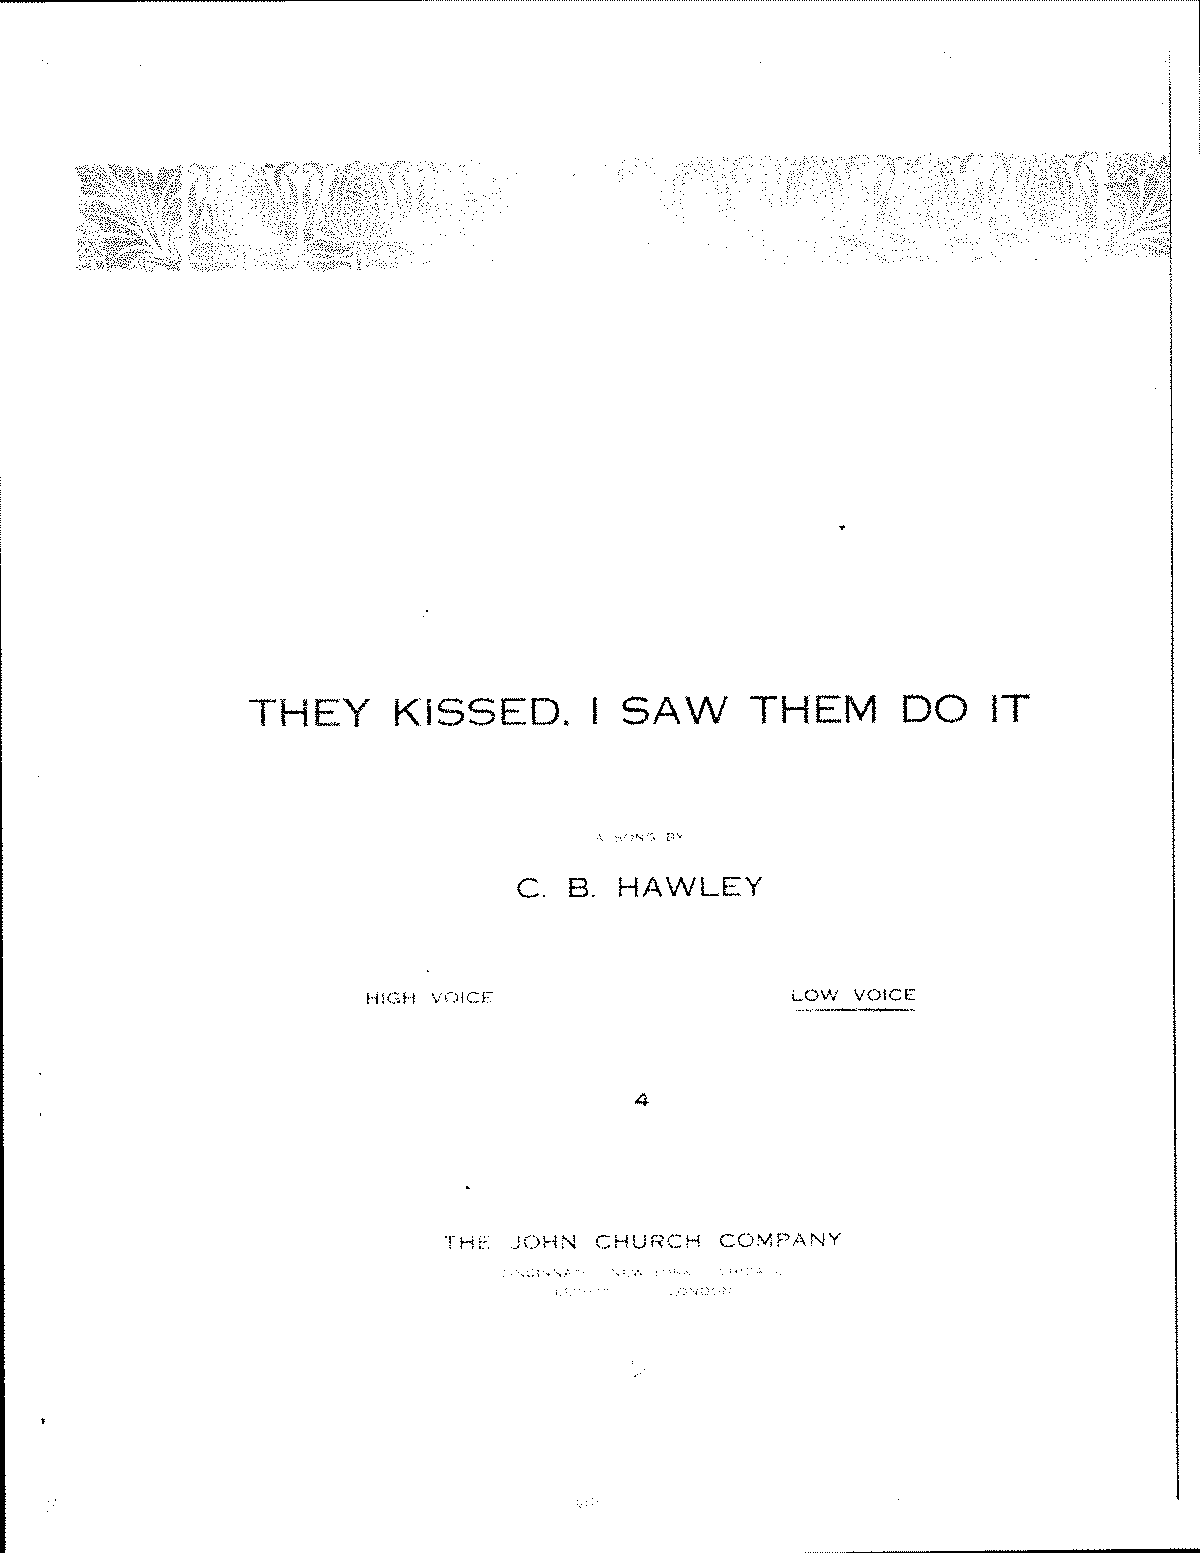 SIBLEY1802.1907.e5b2-Hawley They Kissed.pdf